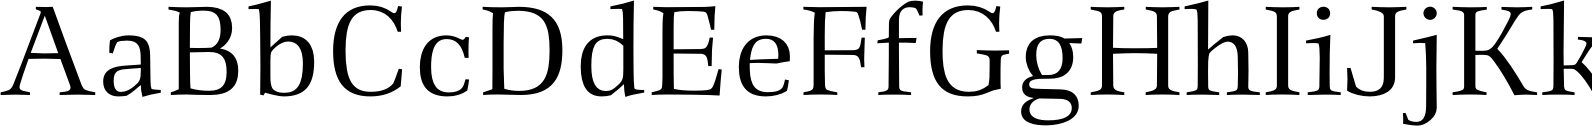 Richler PE Regular Font